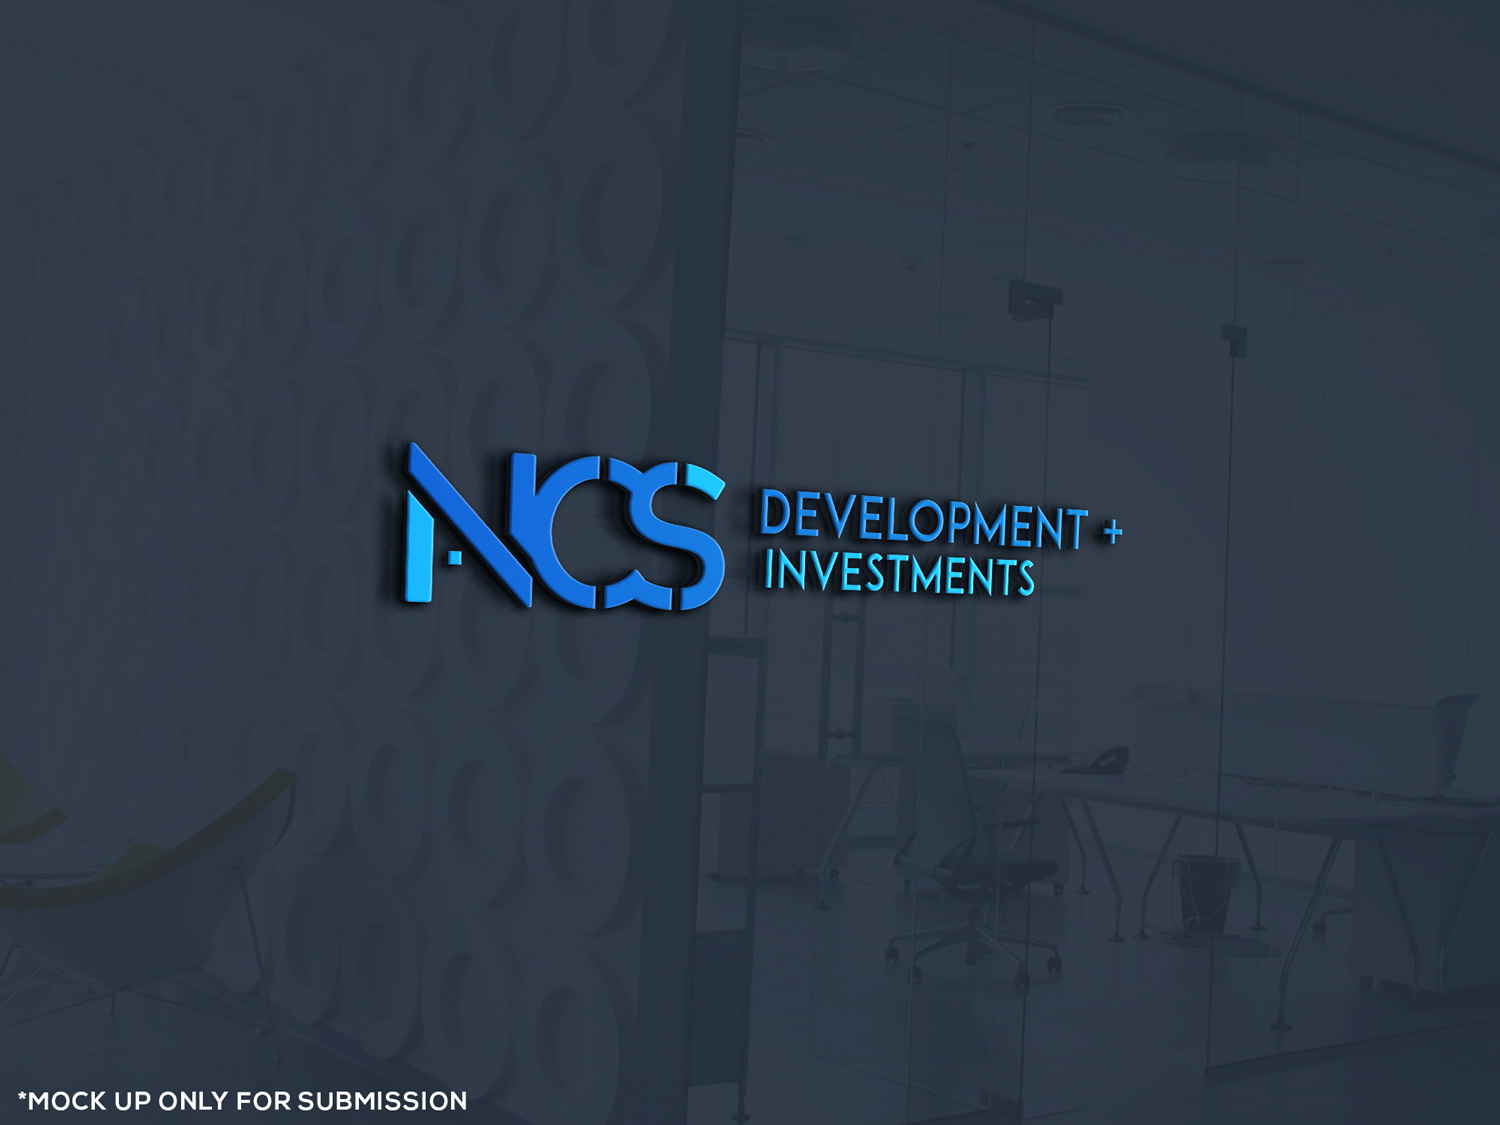 Logo Design for NCS Development + Investments by graphybuzz